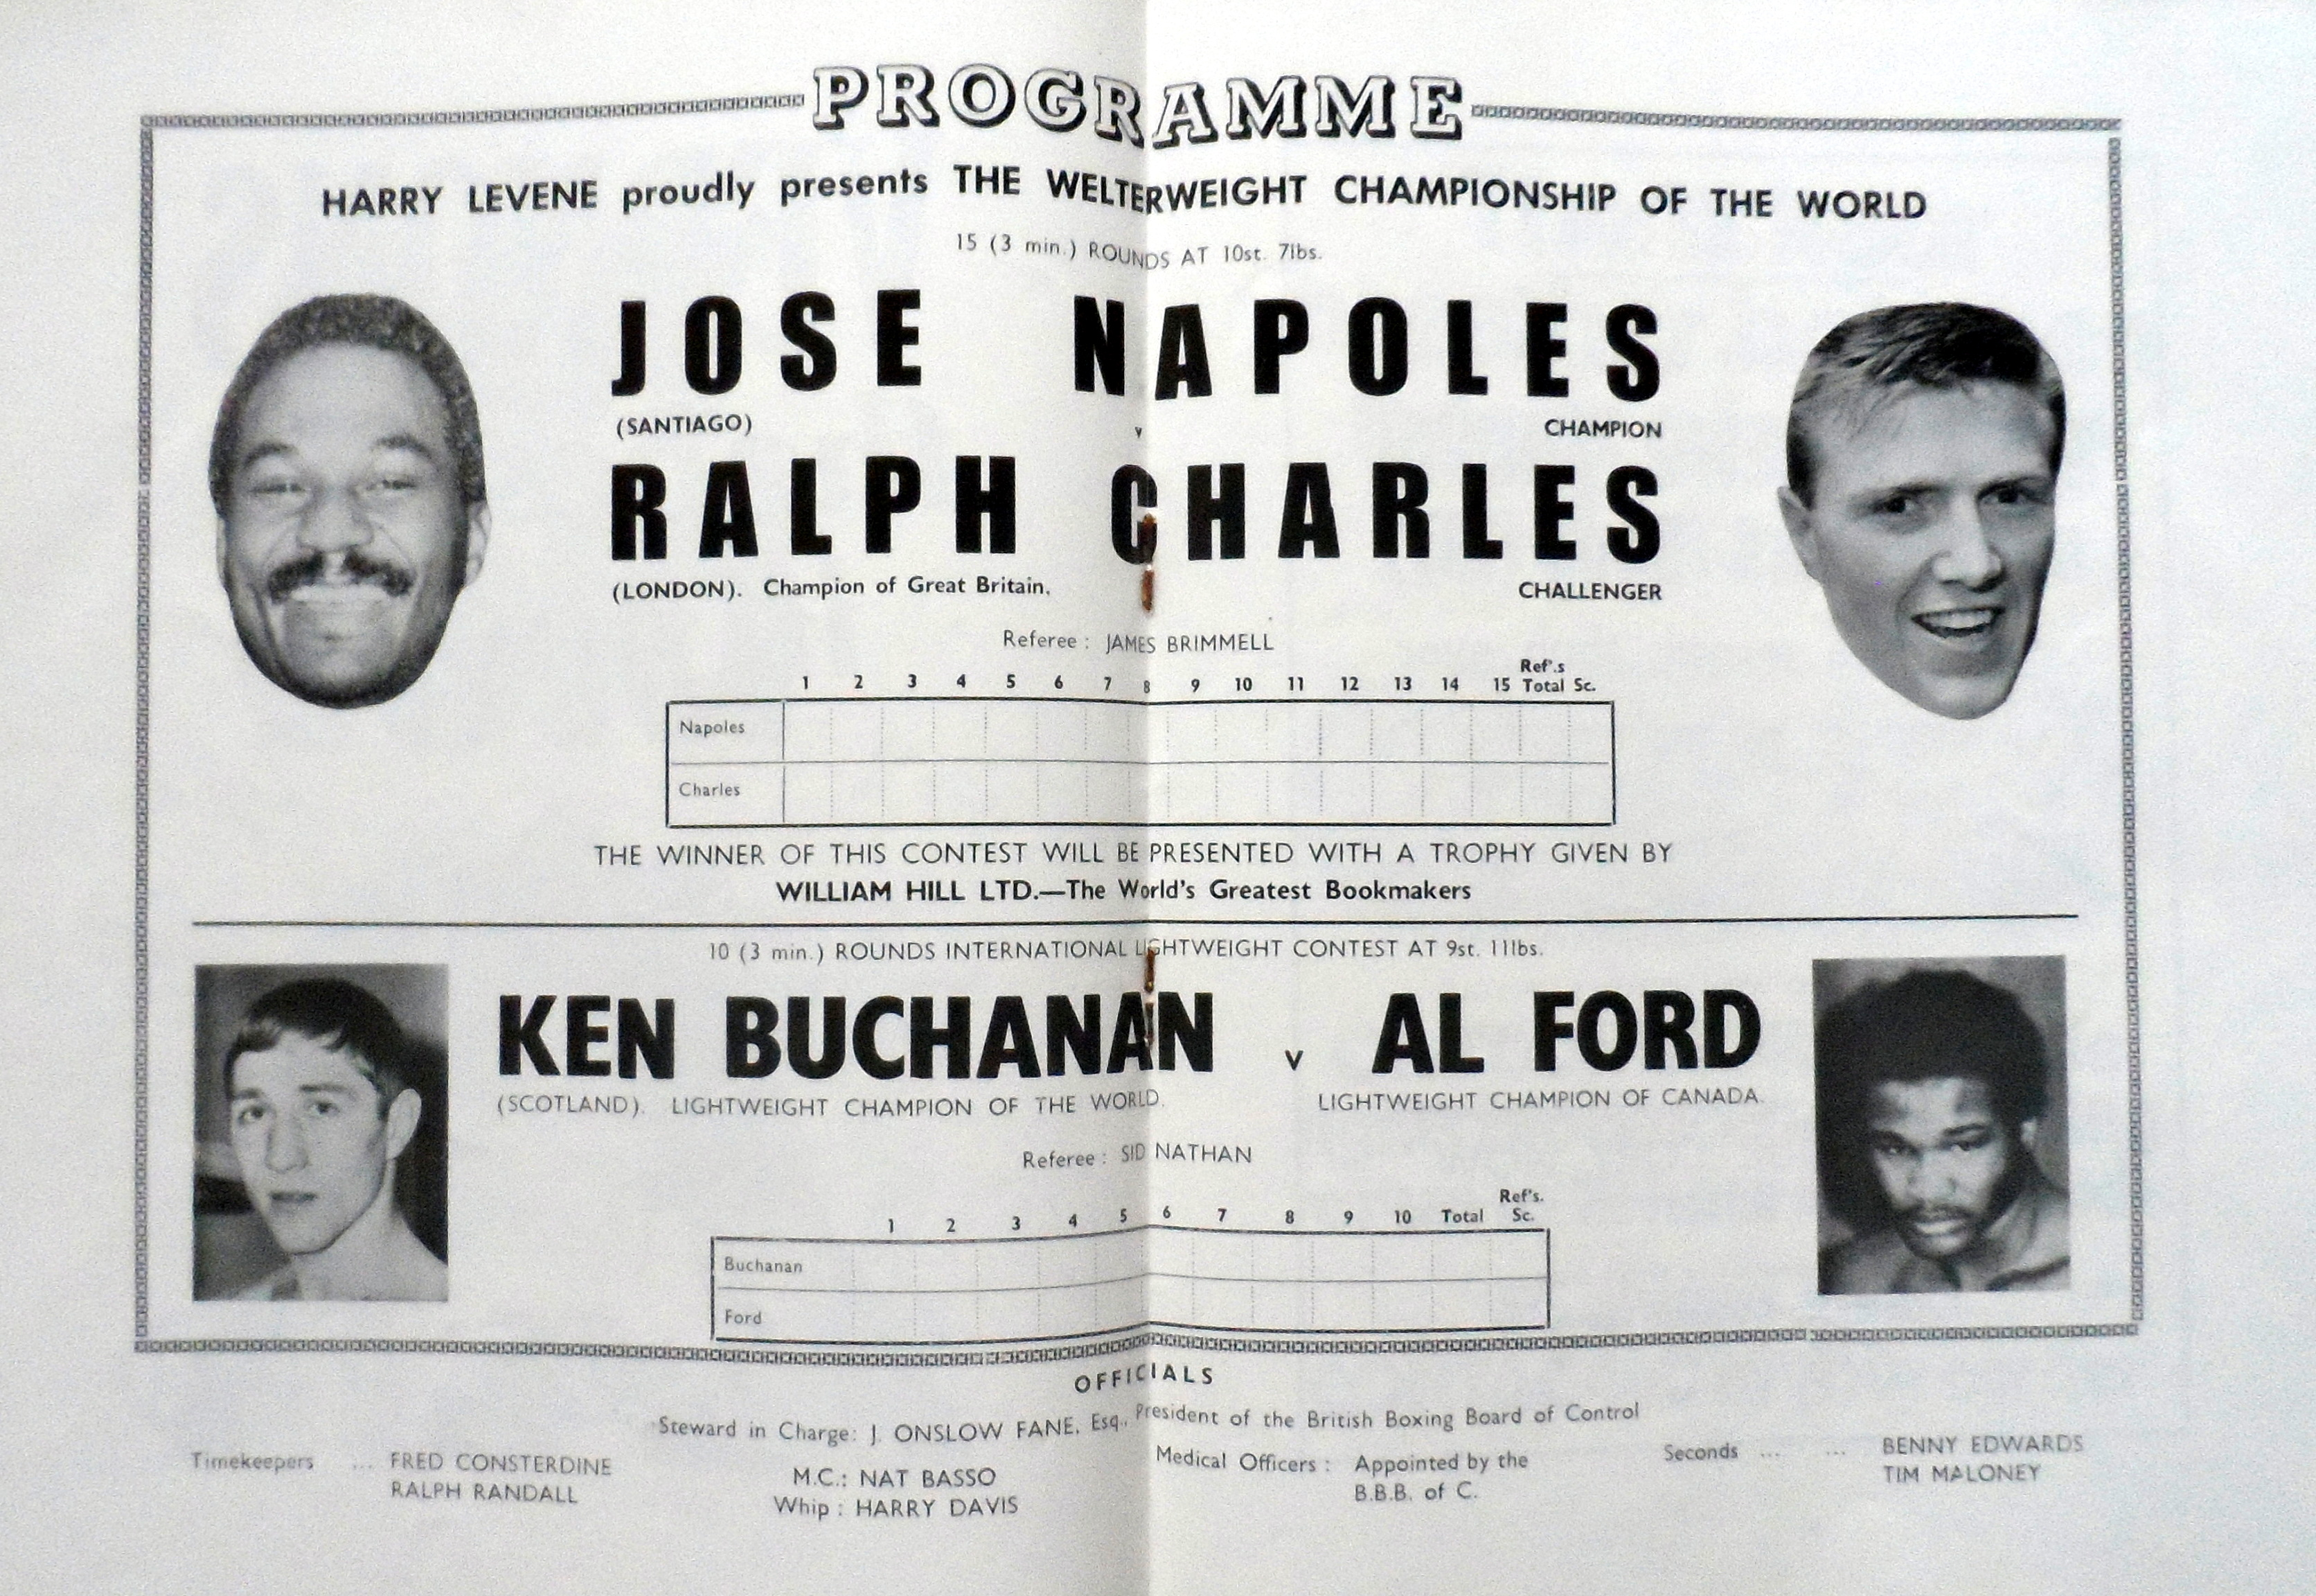 Fight Program Score Card - Napoles-Charles and Buchanan-Ford 1972.